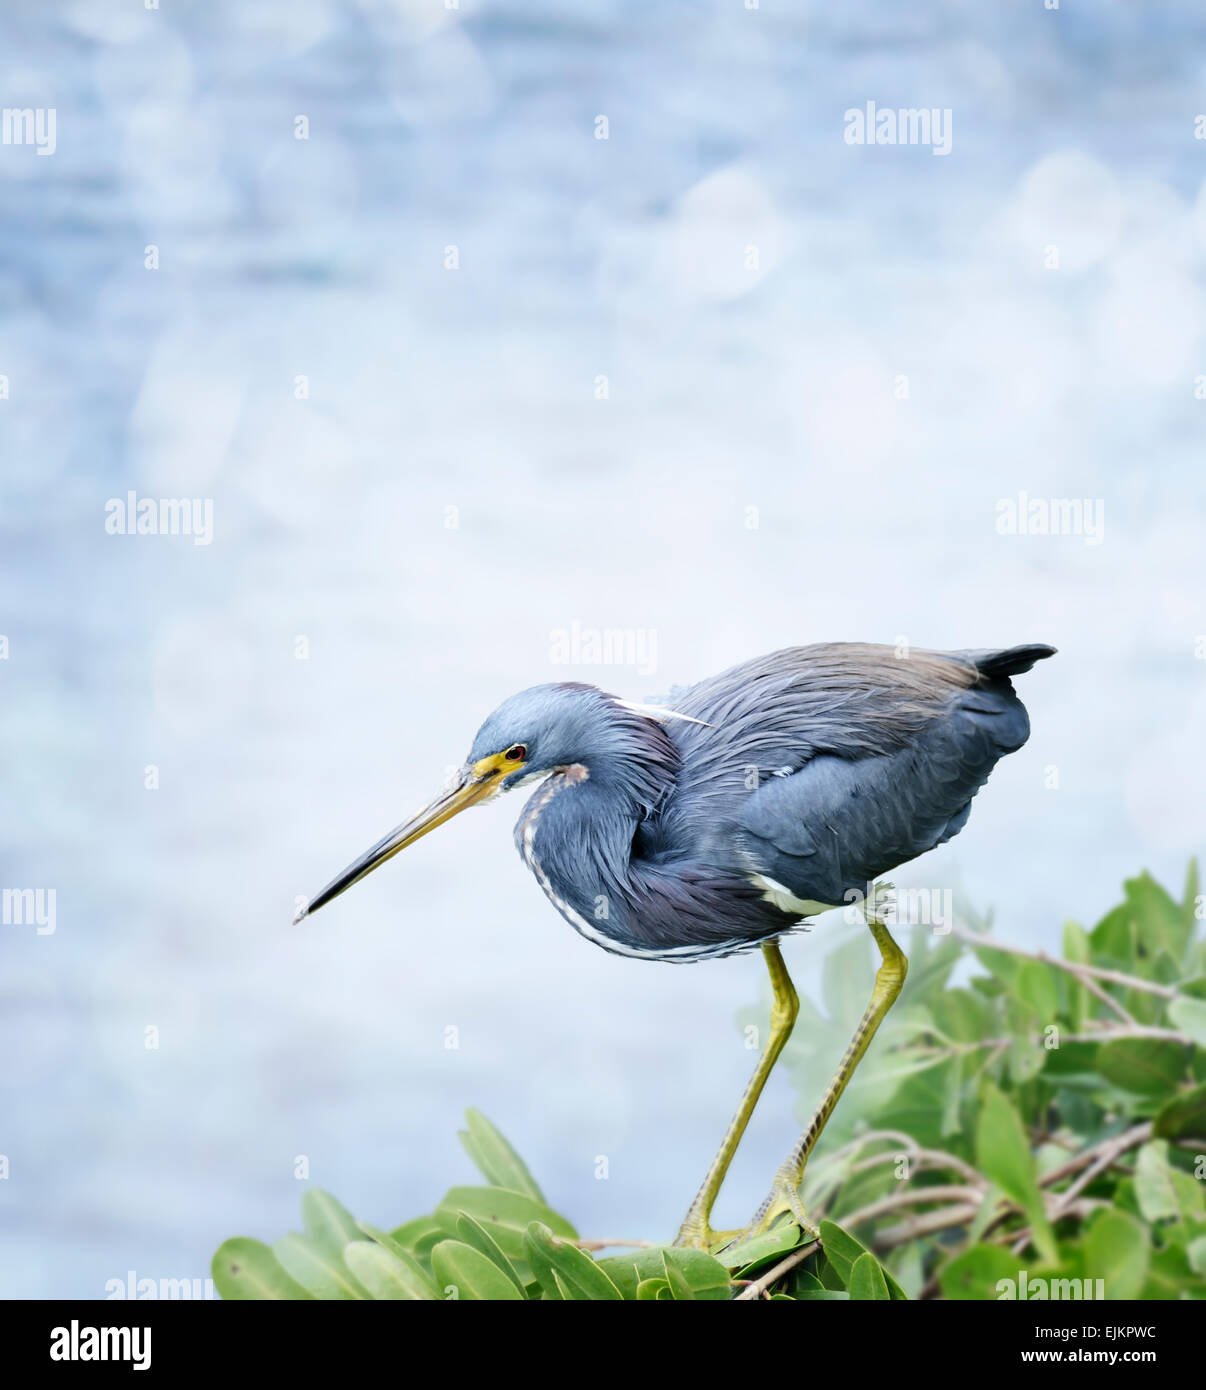 Tricolored Heron Perched On The Bush - Stock Image